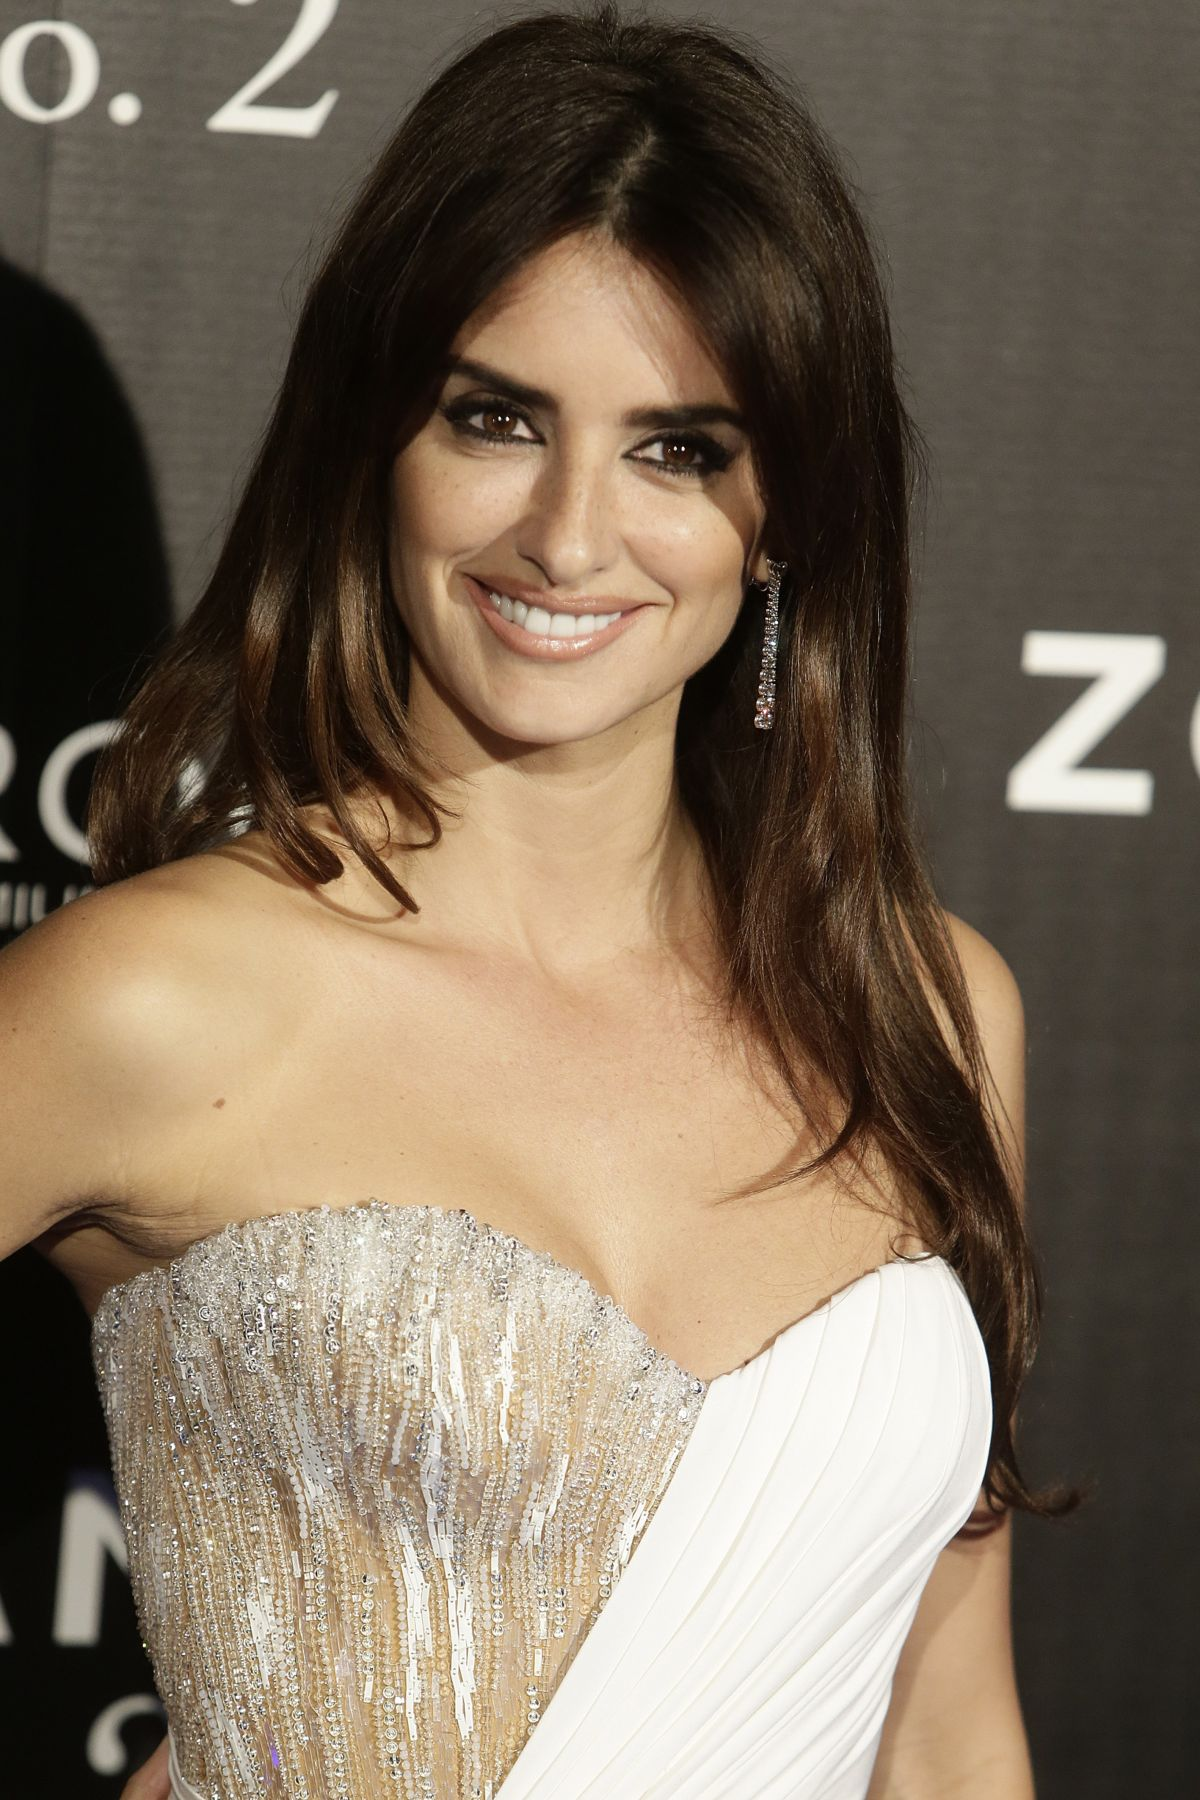 PENELOPE CRUZ at Zoolander 2 Premiere in Madrid 02/01/2016 ... Penelope Cruz